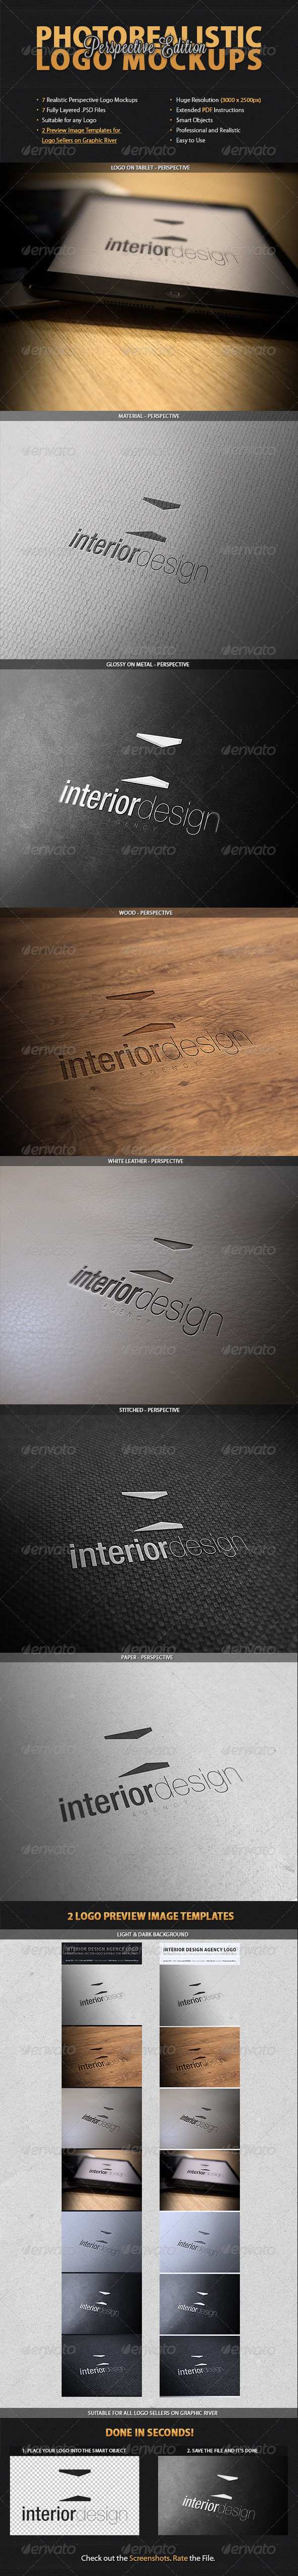 GraphicRiver 7 Photorealistic Logo Mockups Perspective 3693405